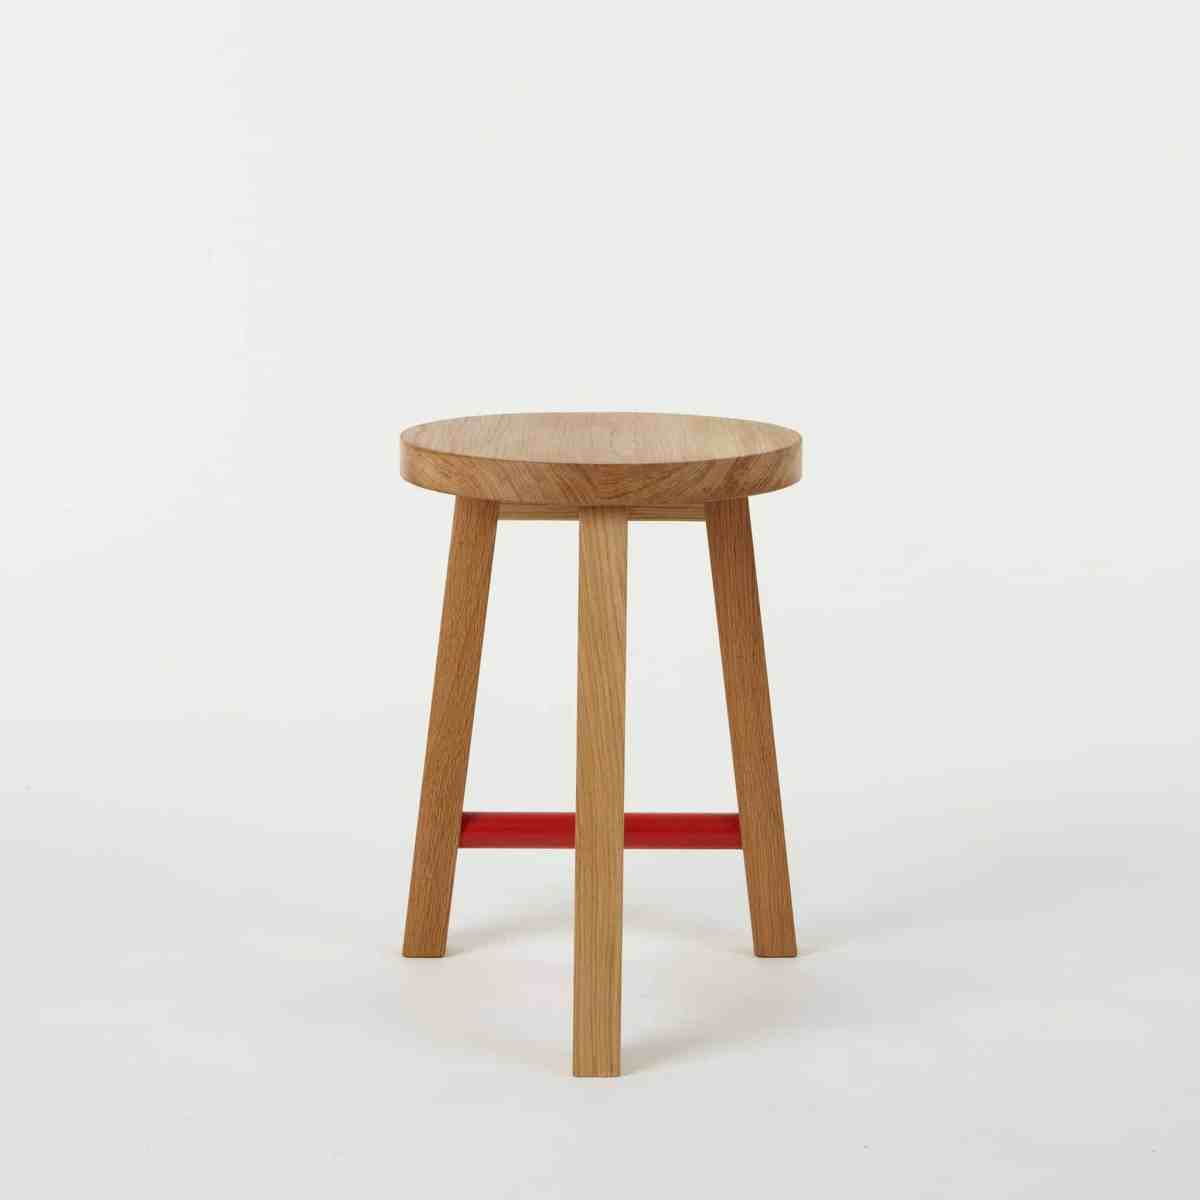 series-two-stool-round-oak-another-country-002